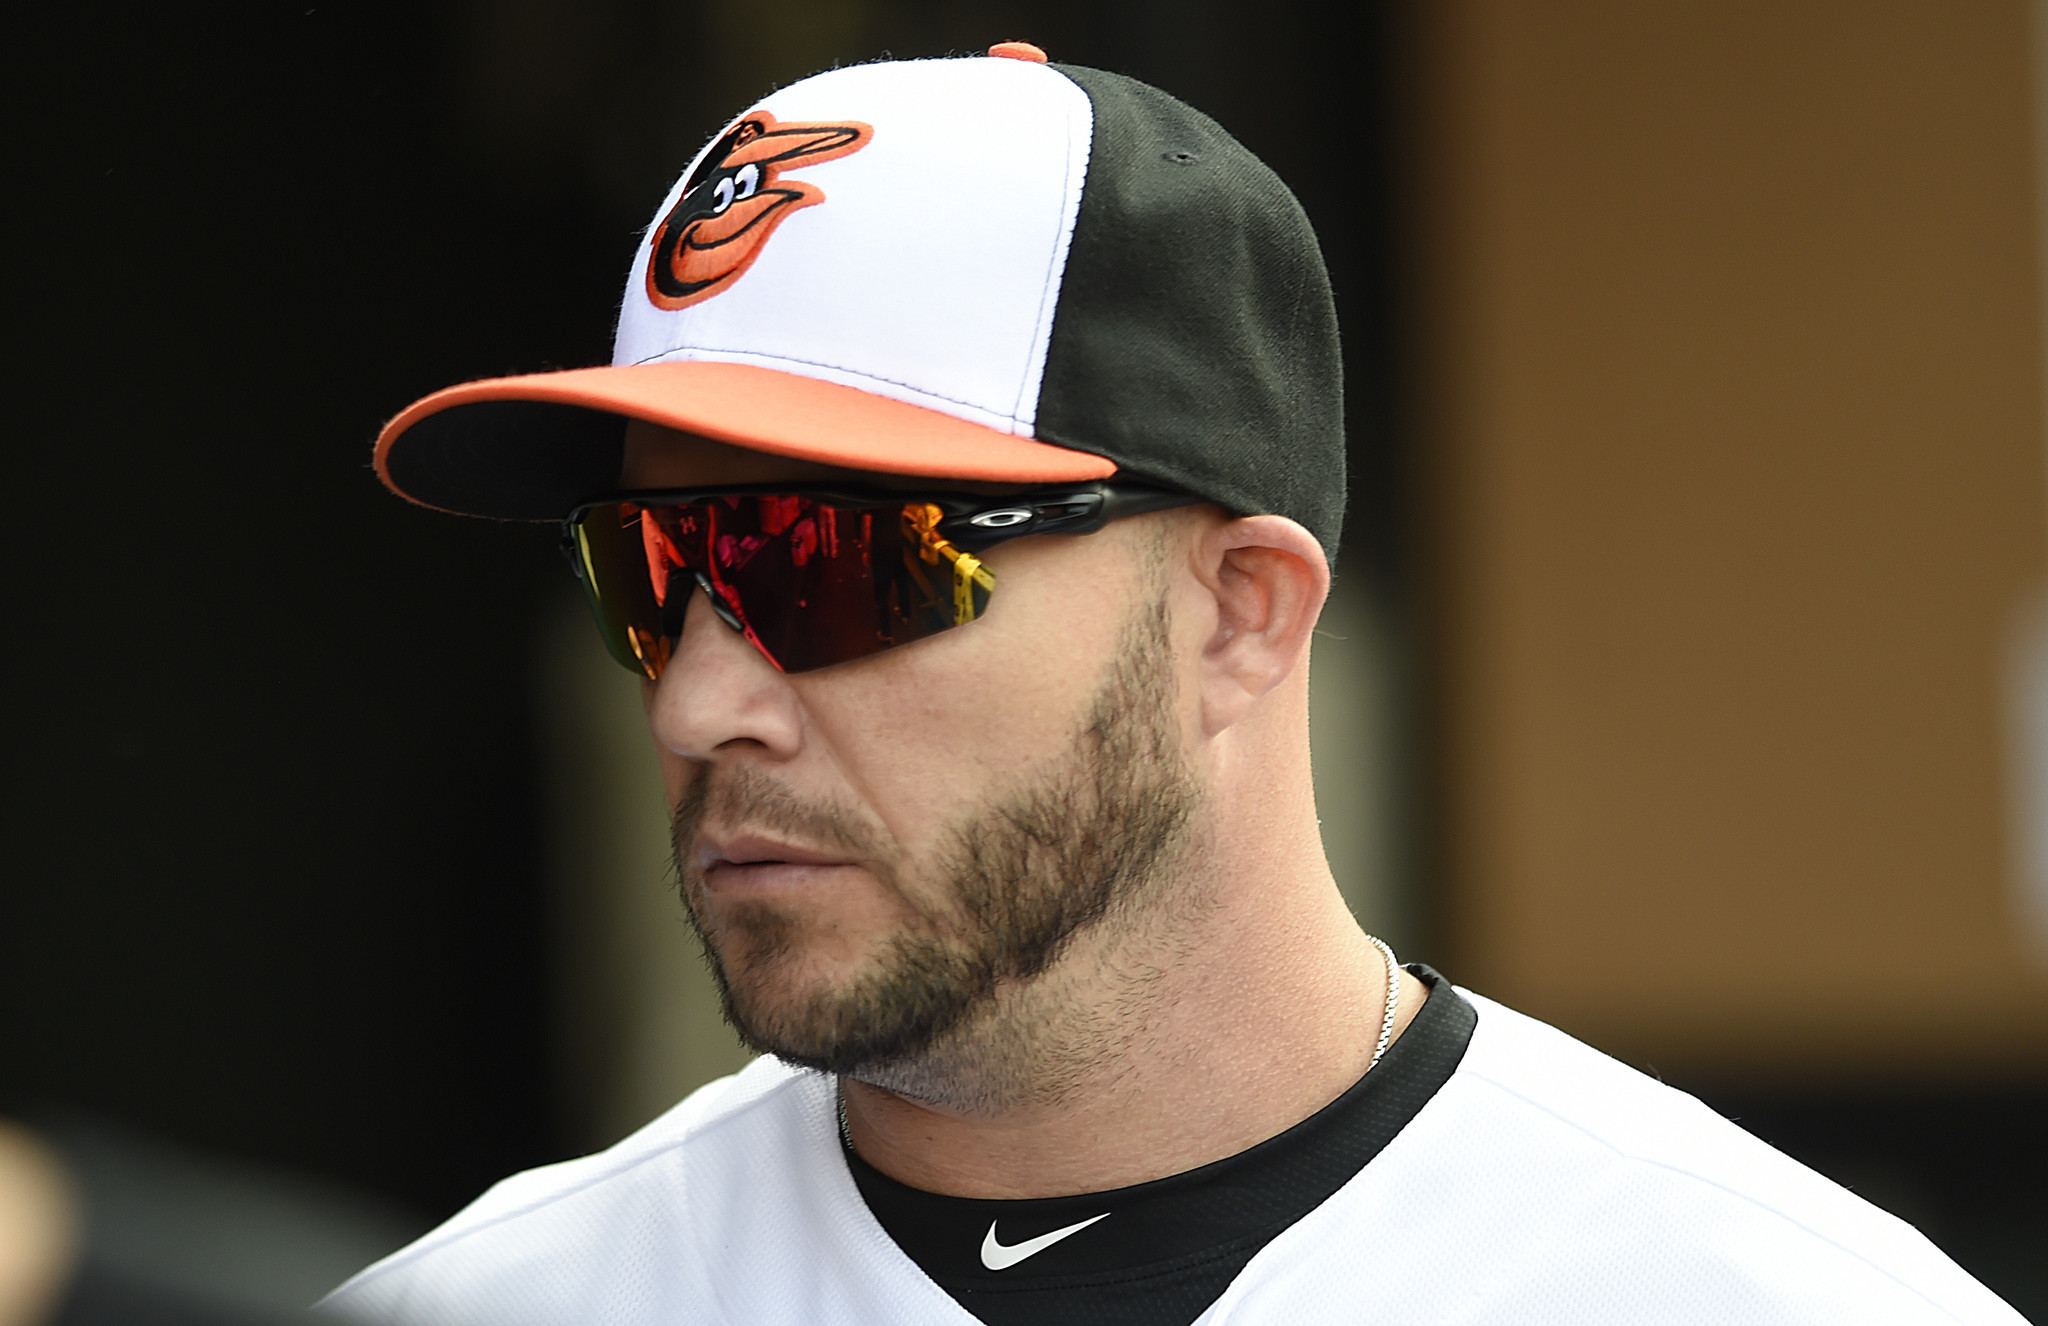 Bal-just-as-quickly-as-he-filled-one-injury-to-steve-pearce-could-leave-major-hole-in-orioles-roster-20160807